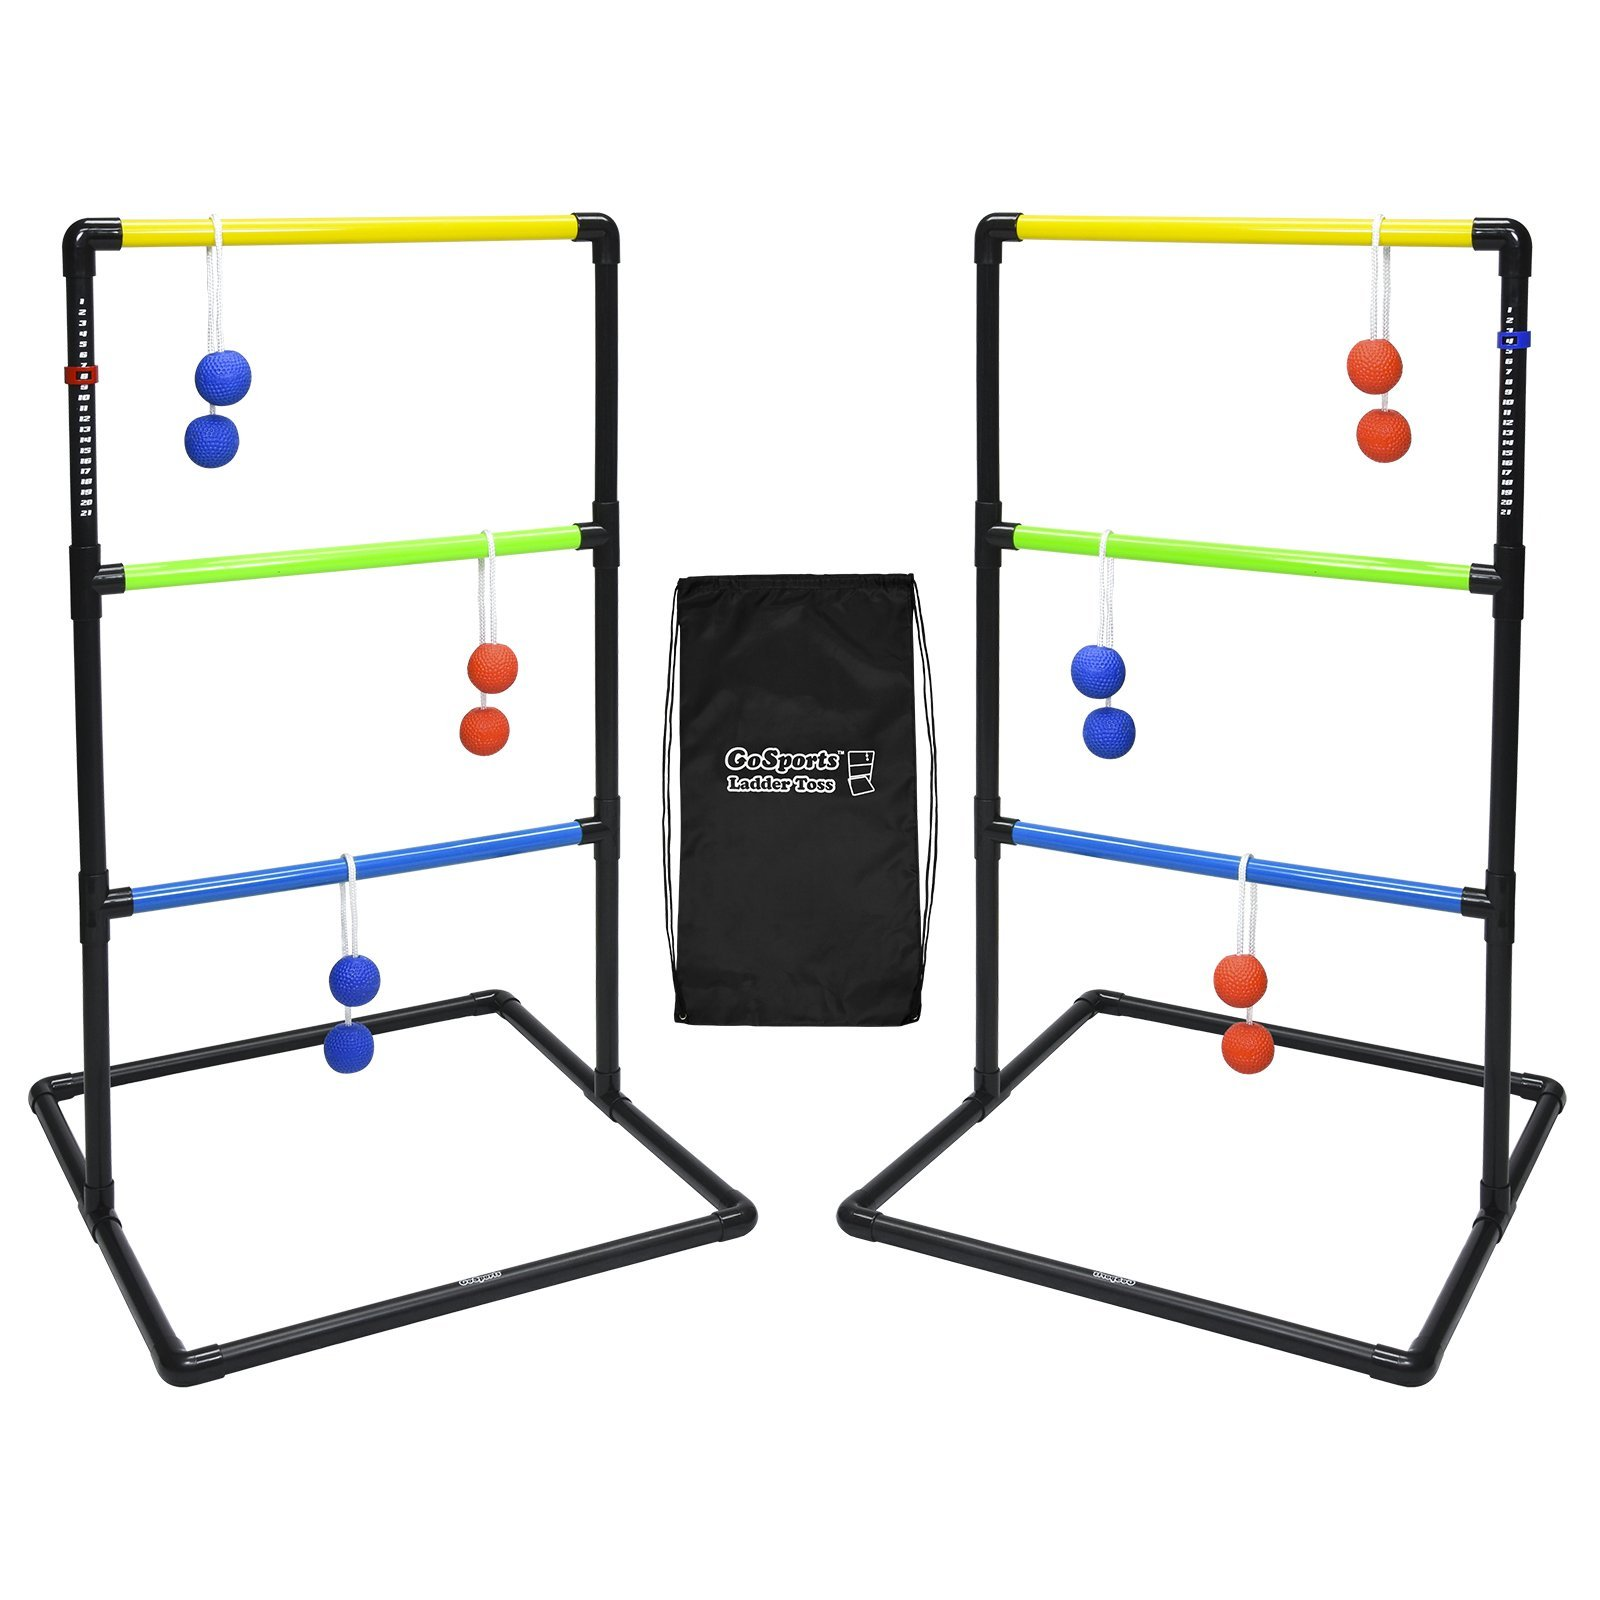 GoSports Indoor/Outdoor Ladder Toss Game Set with 6 Rubber Bolos, Carrying Case and Score Trackers by GoSports